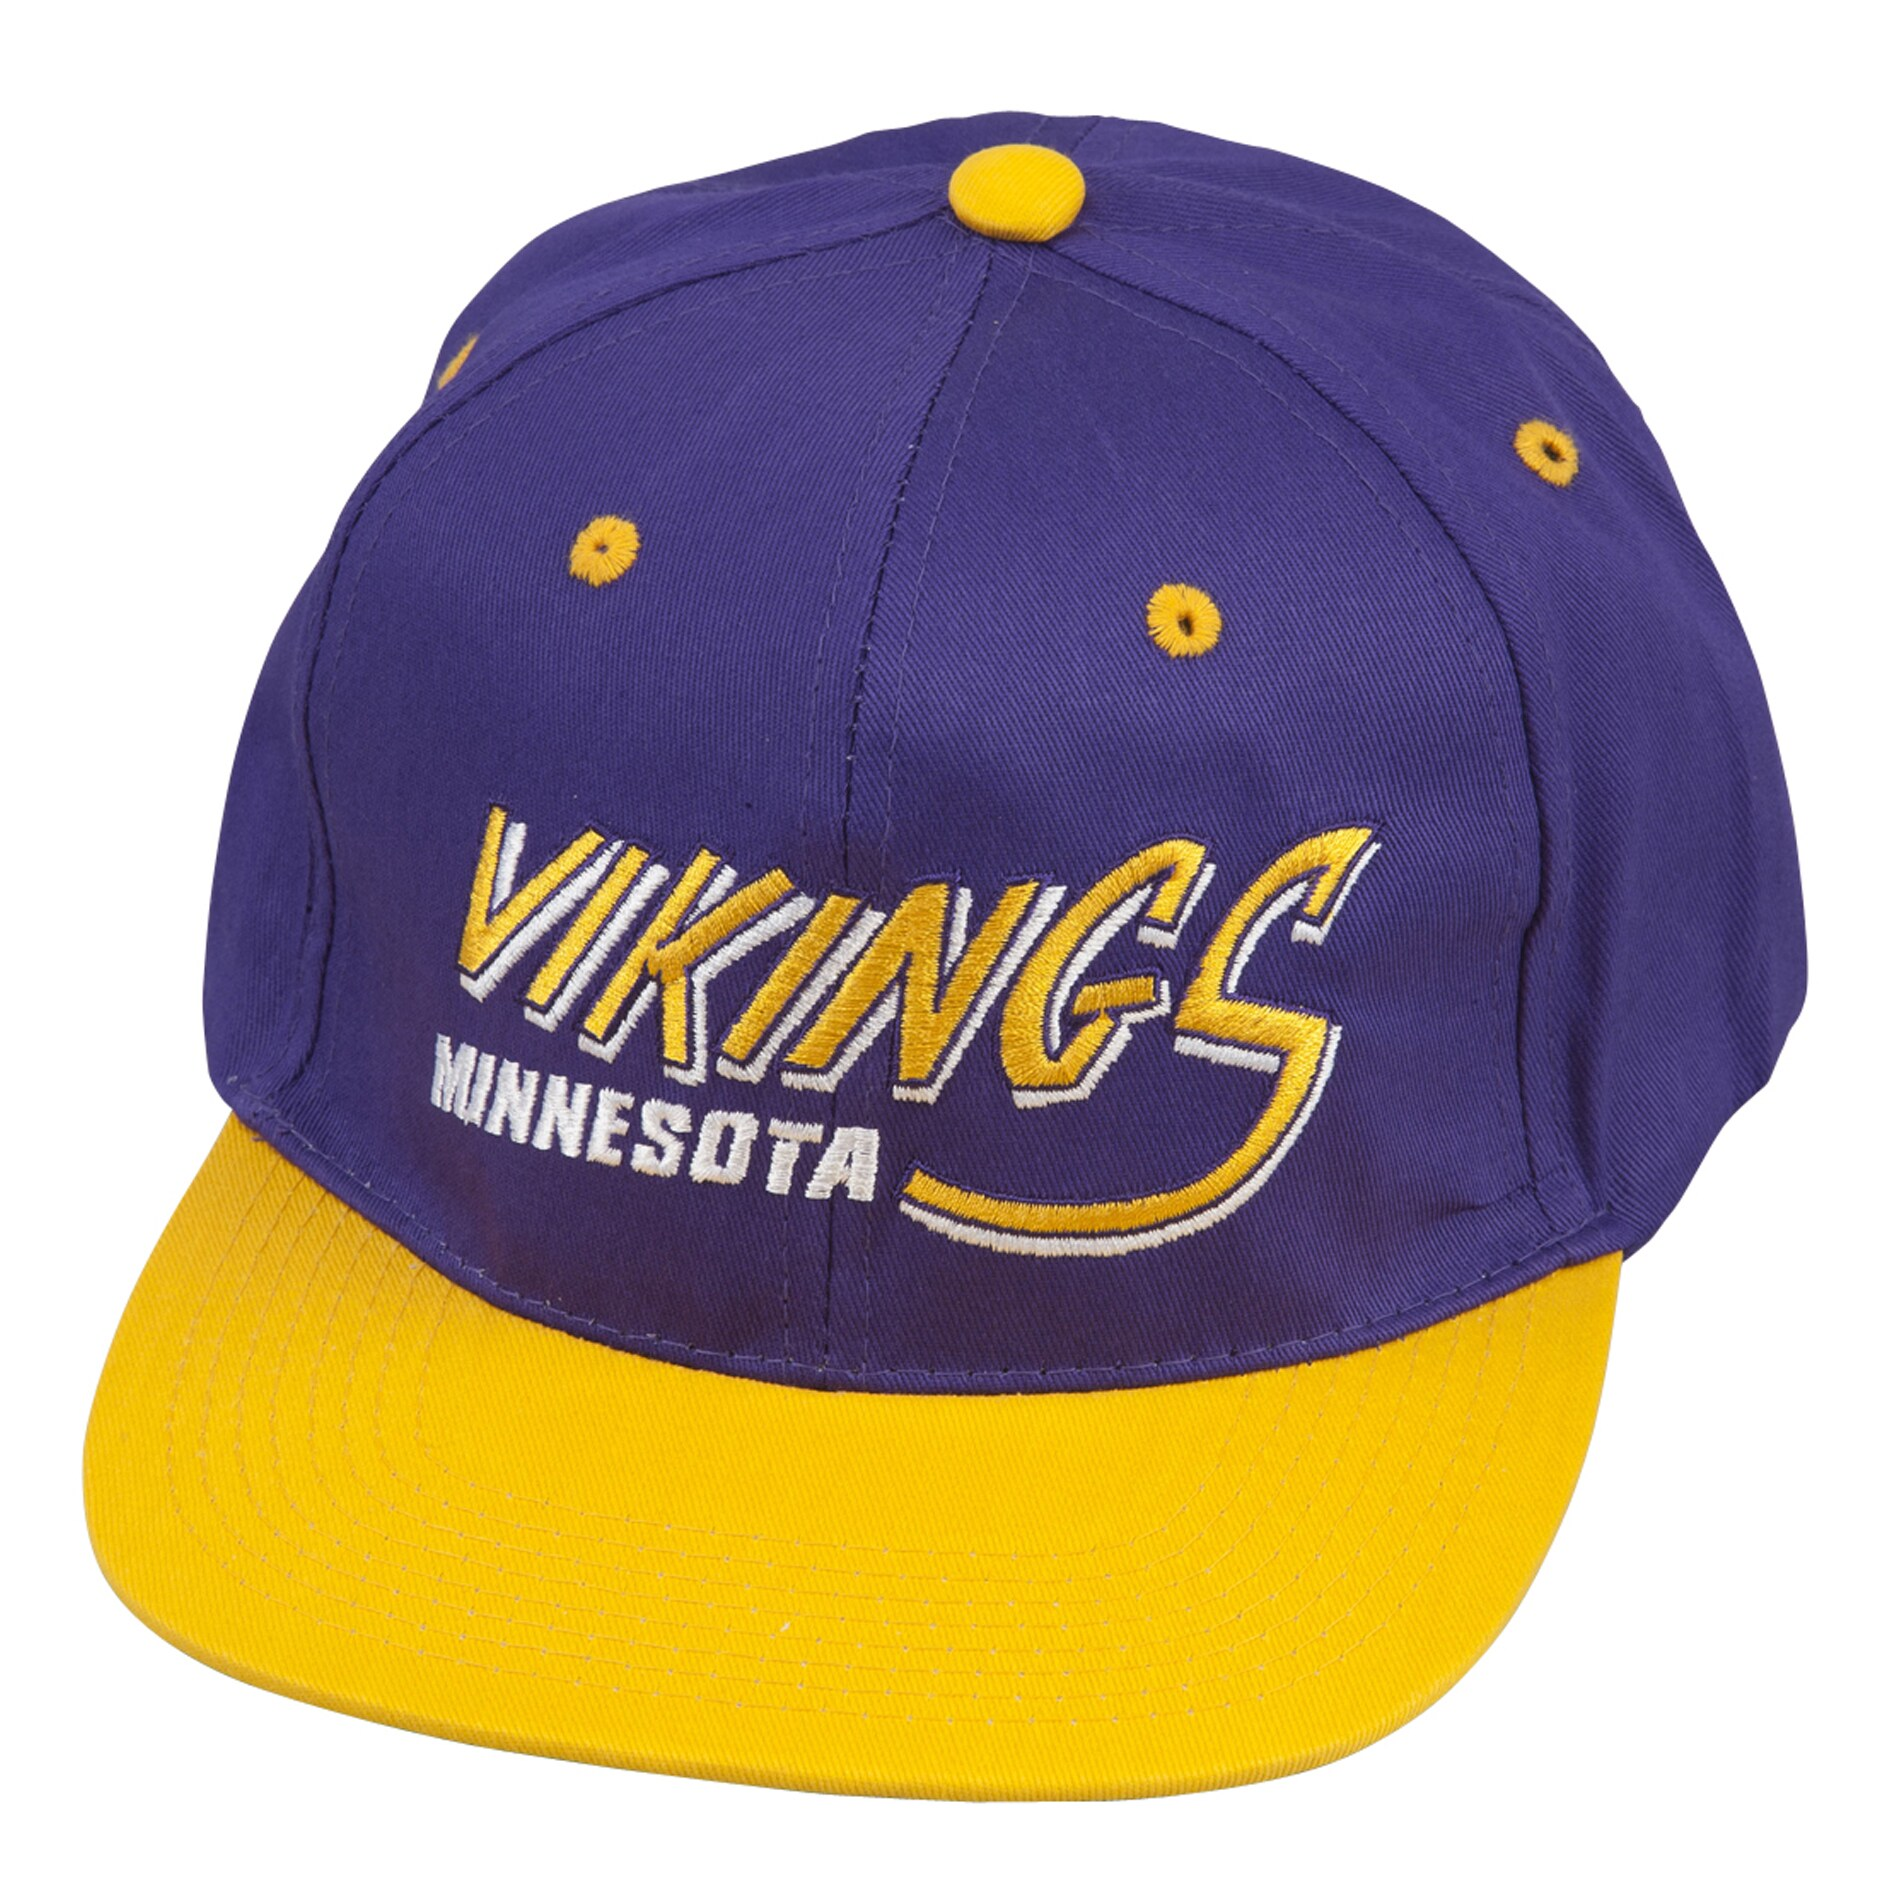 Minnesota Vikings Retro NFL Snapback Hat